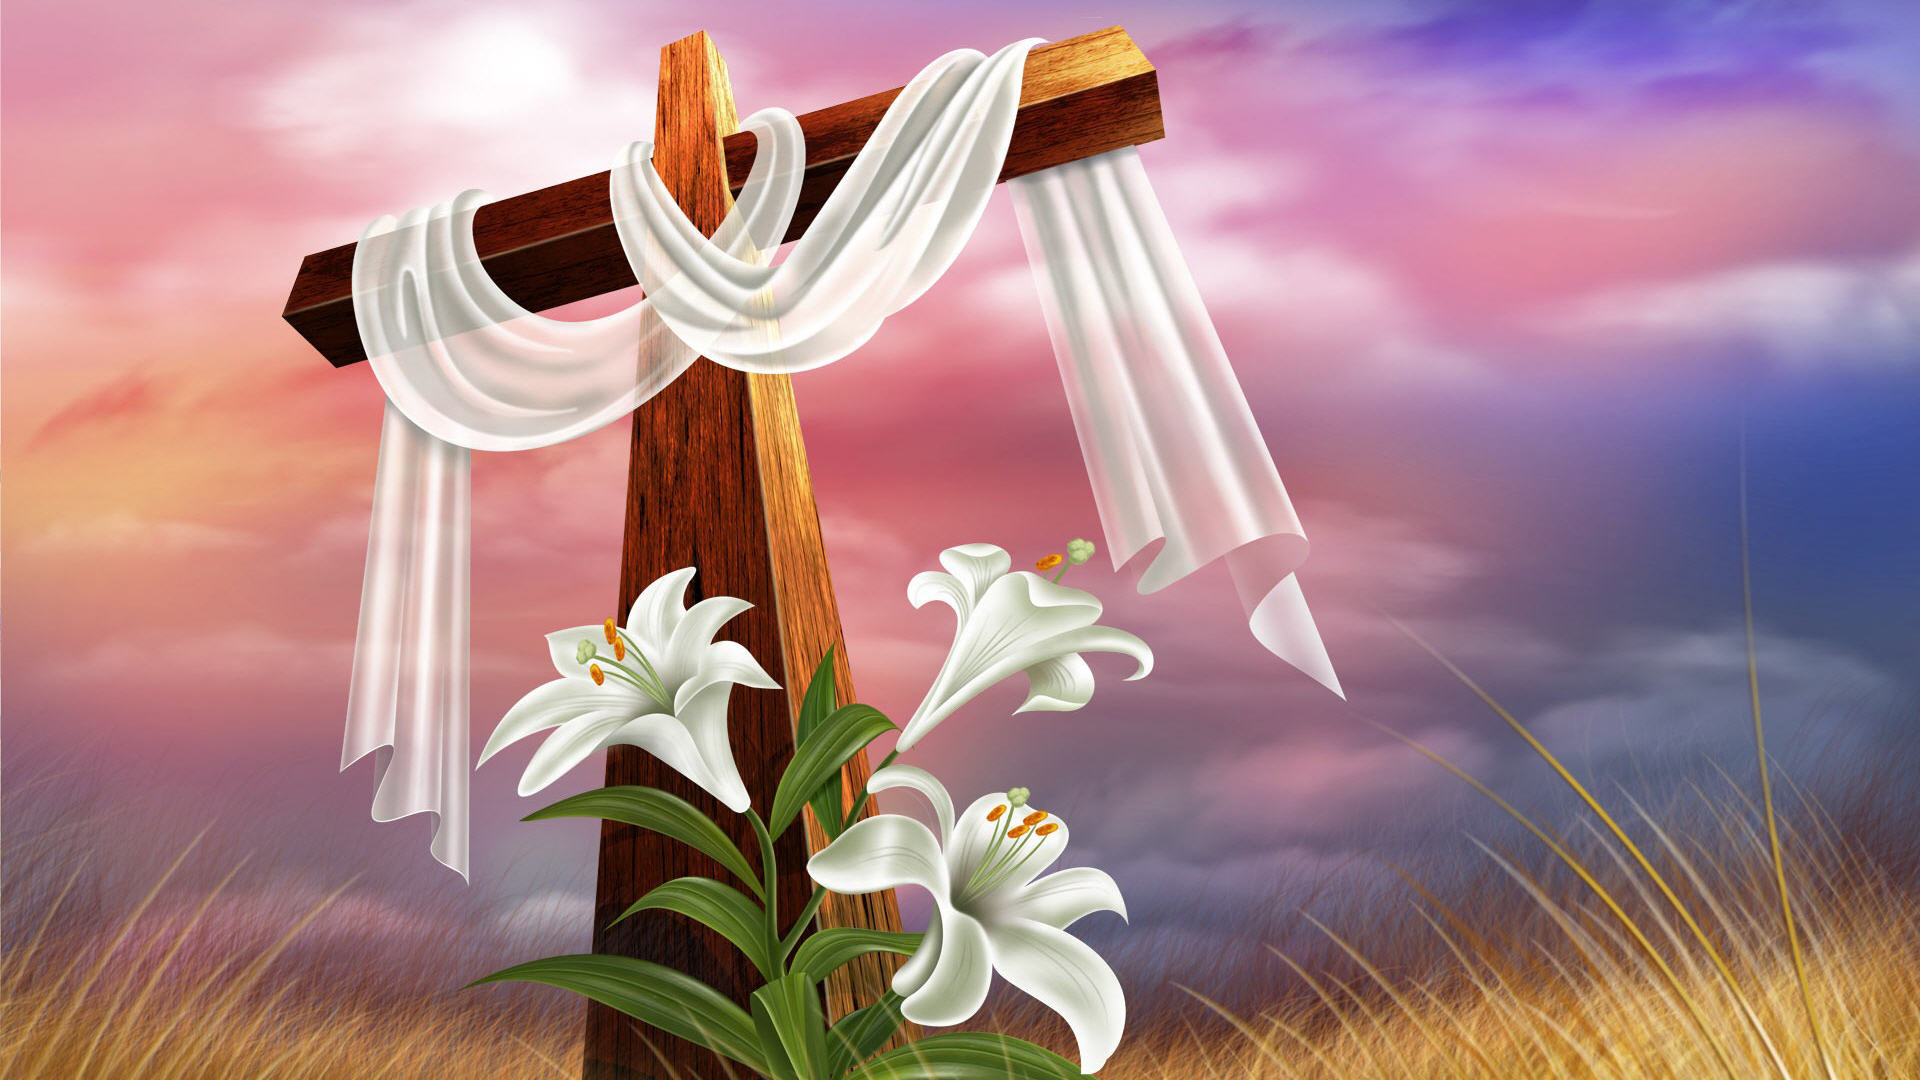 Free Easter Desktop Wallpaper Happy Easter Desktop Wallpaper